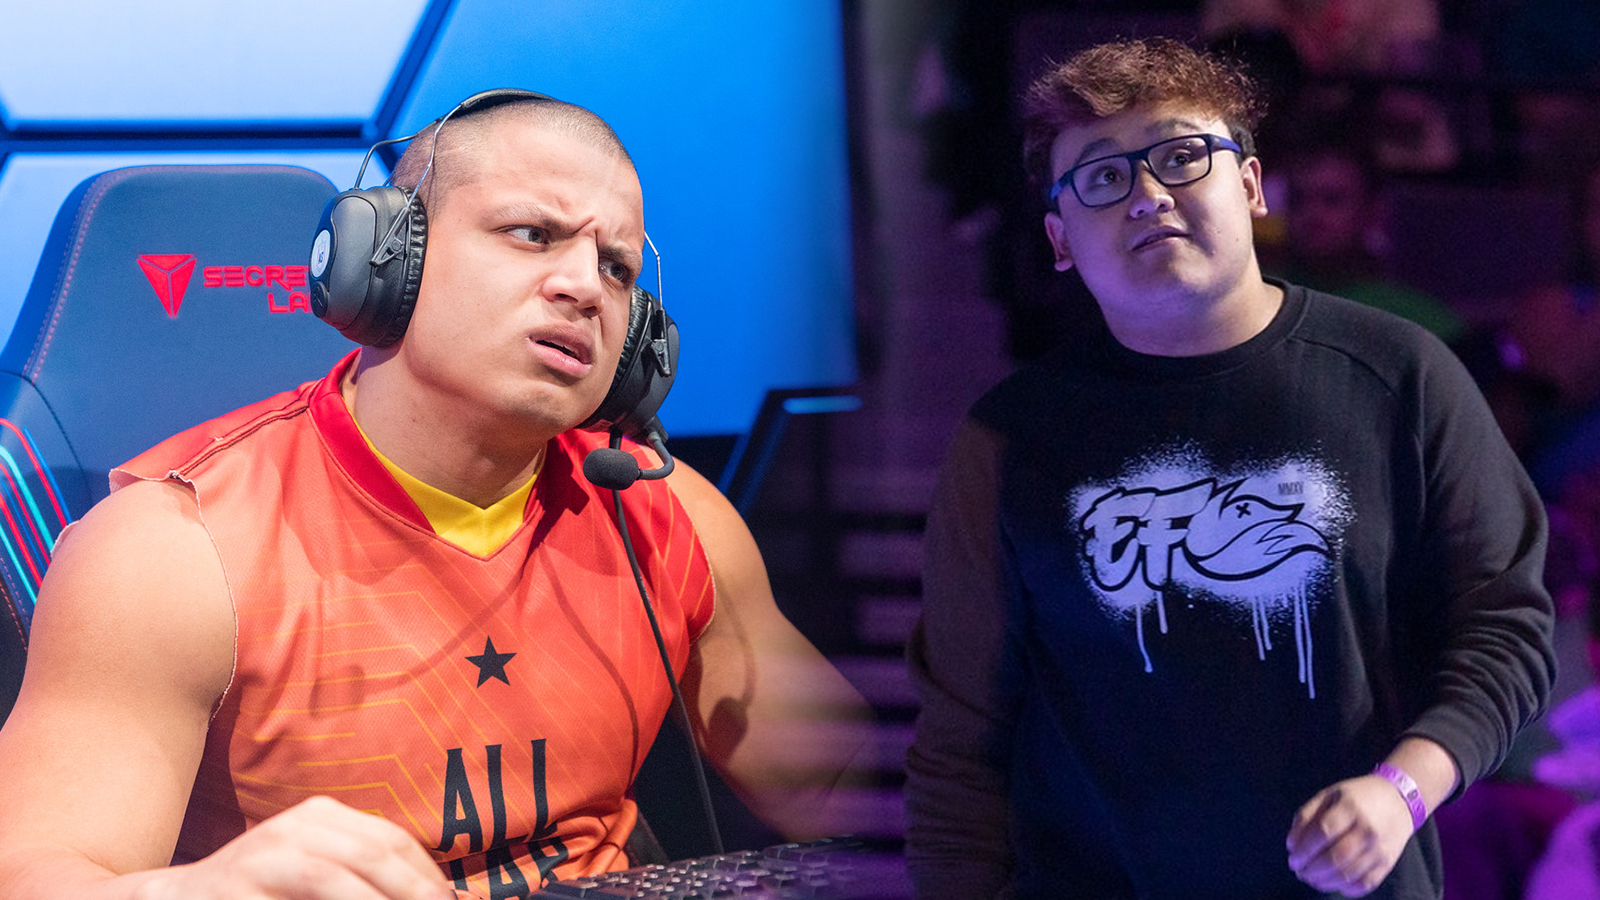 Tyler1 and MkLeo